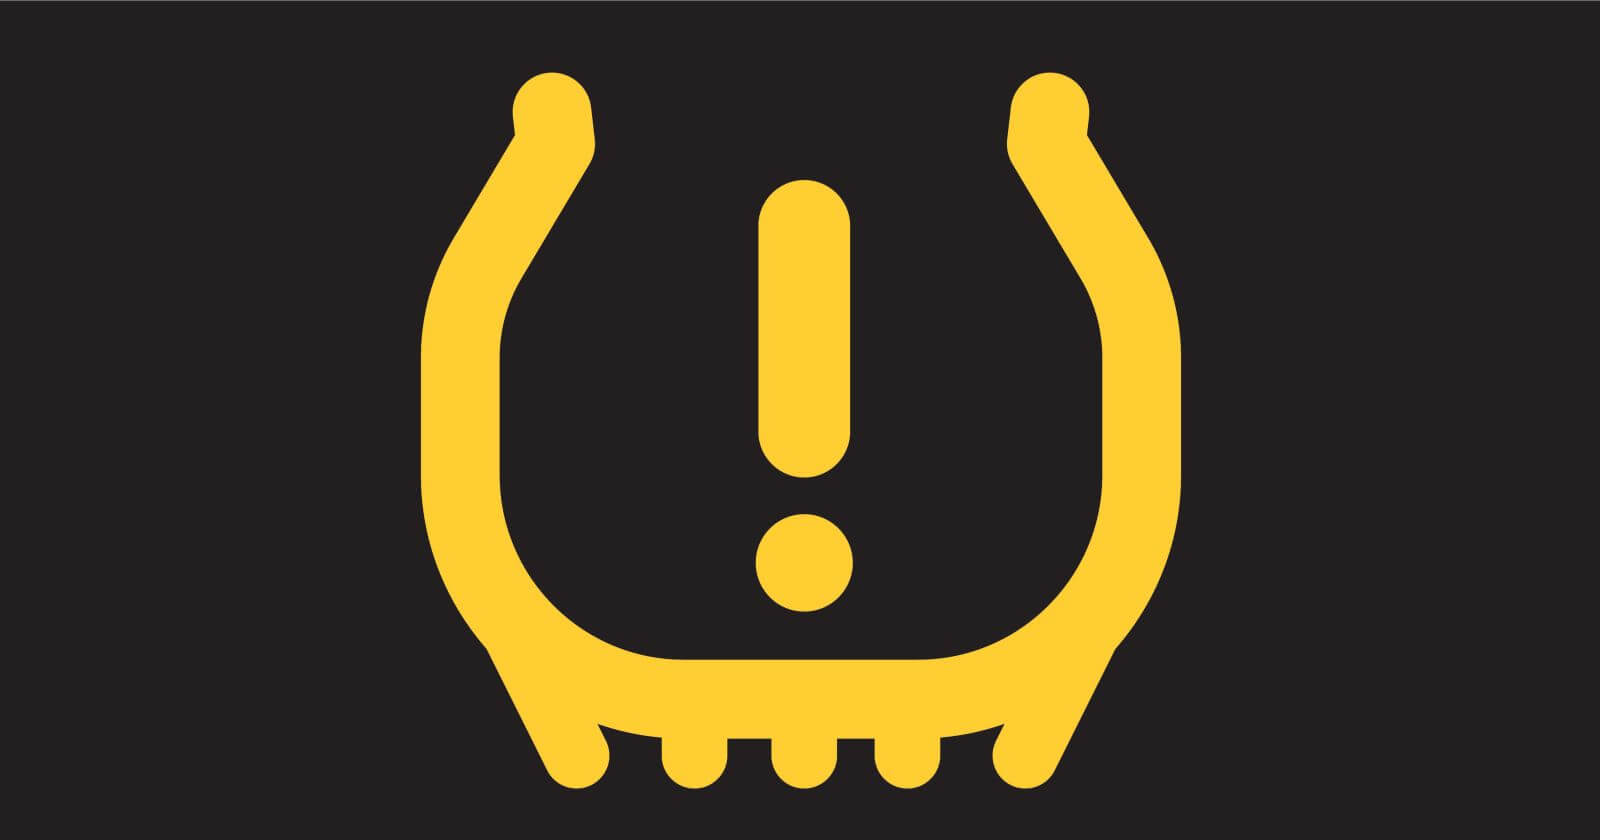 Car Dashboard Symbols and Meanings - Tire Pressure Warning Light